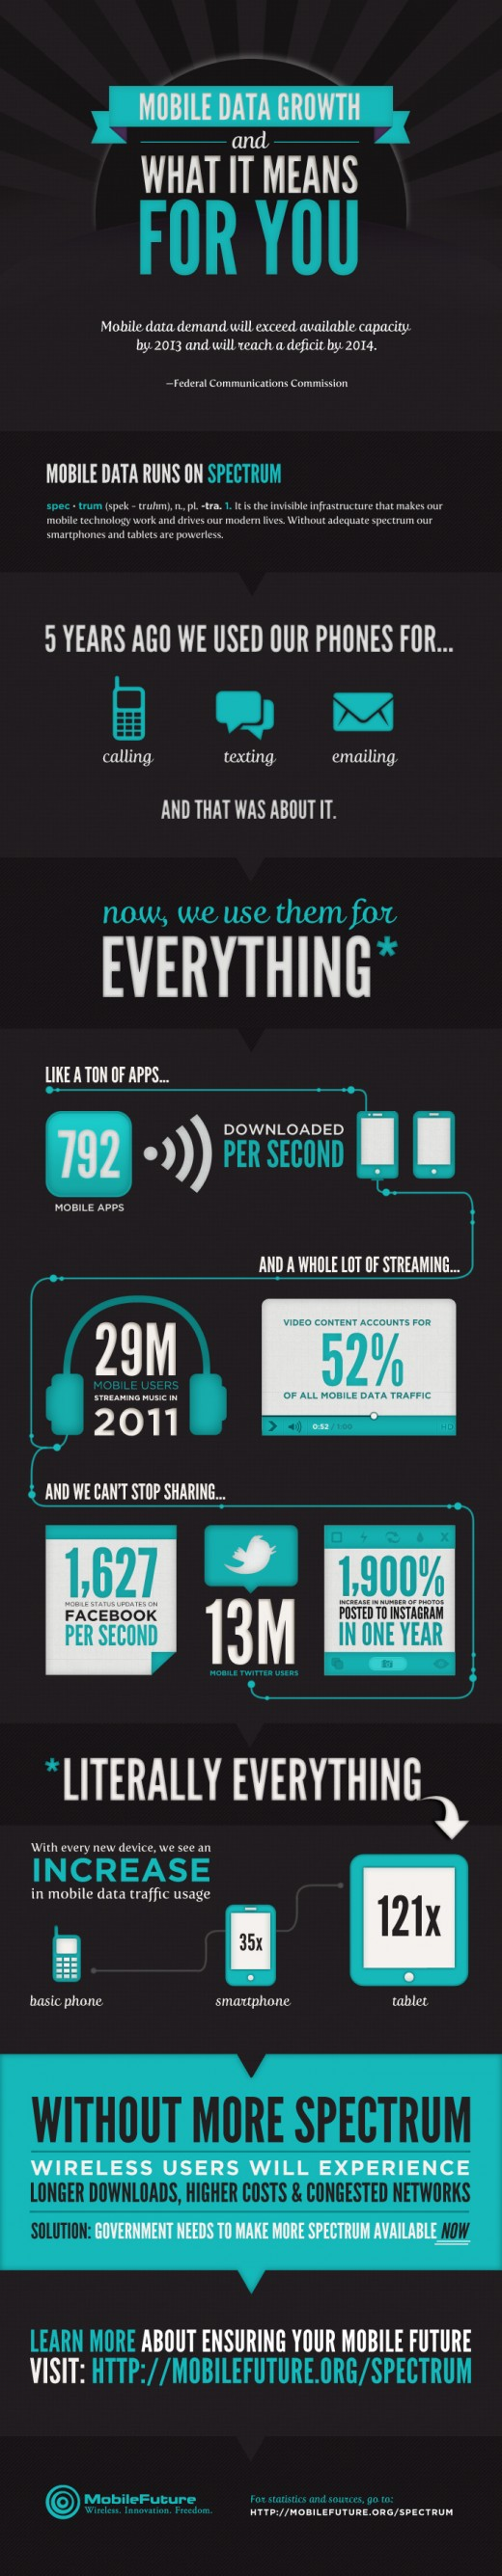 mobile future spectrum infographic 520x2671 Mobile data growth and what it means for you [Infographic]